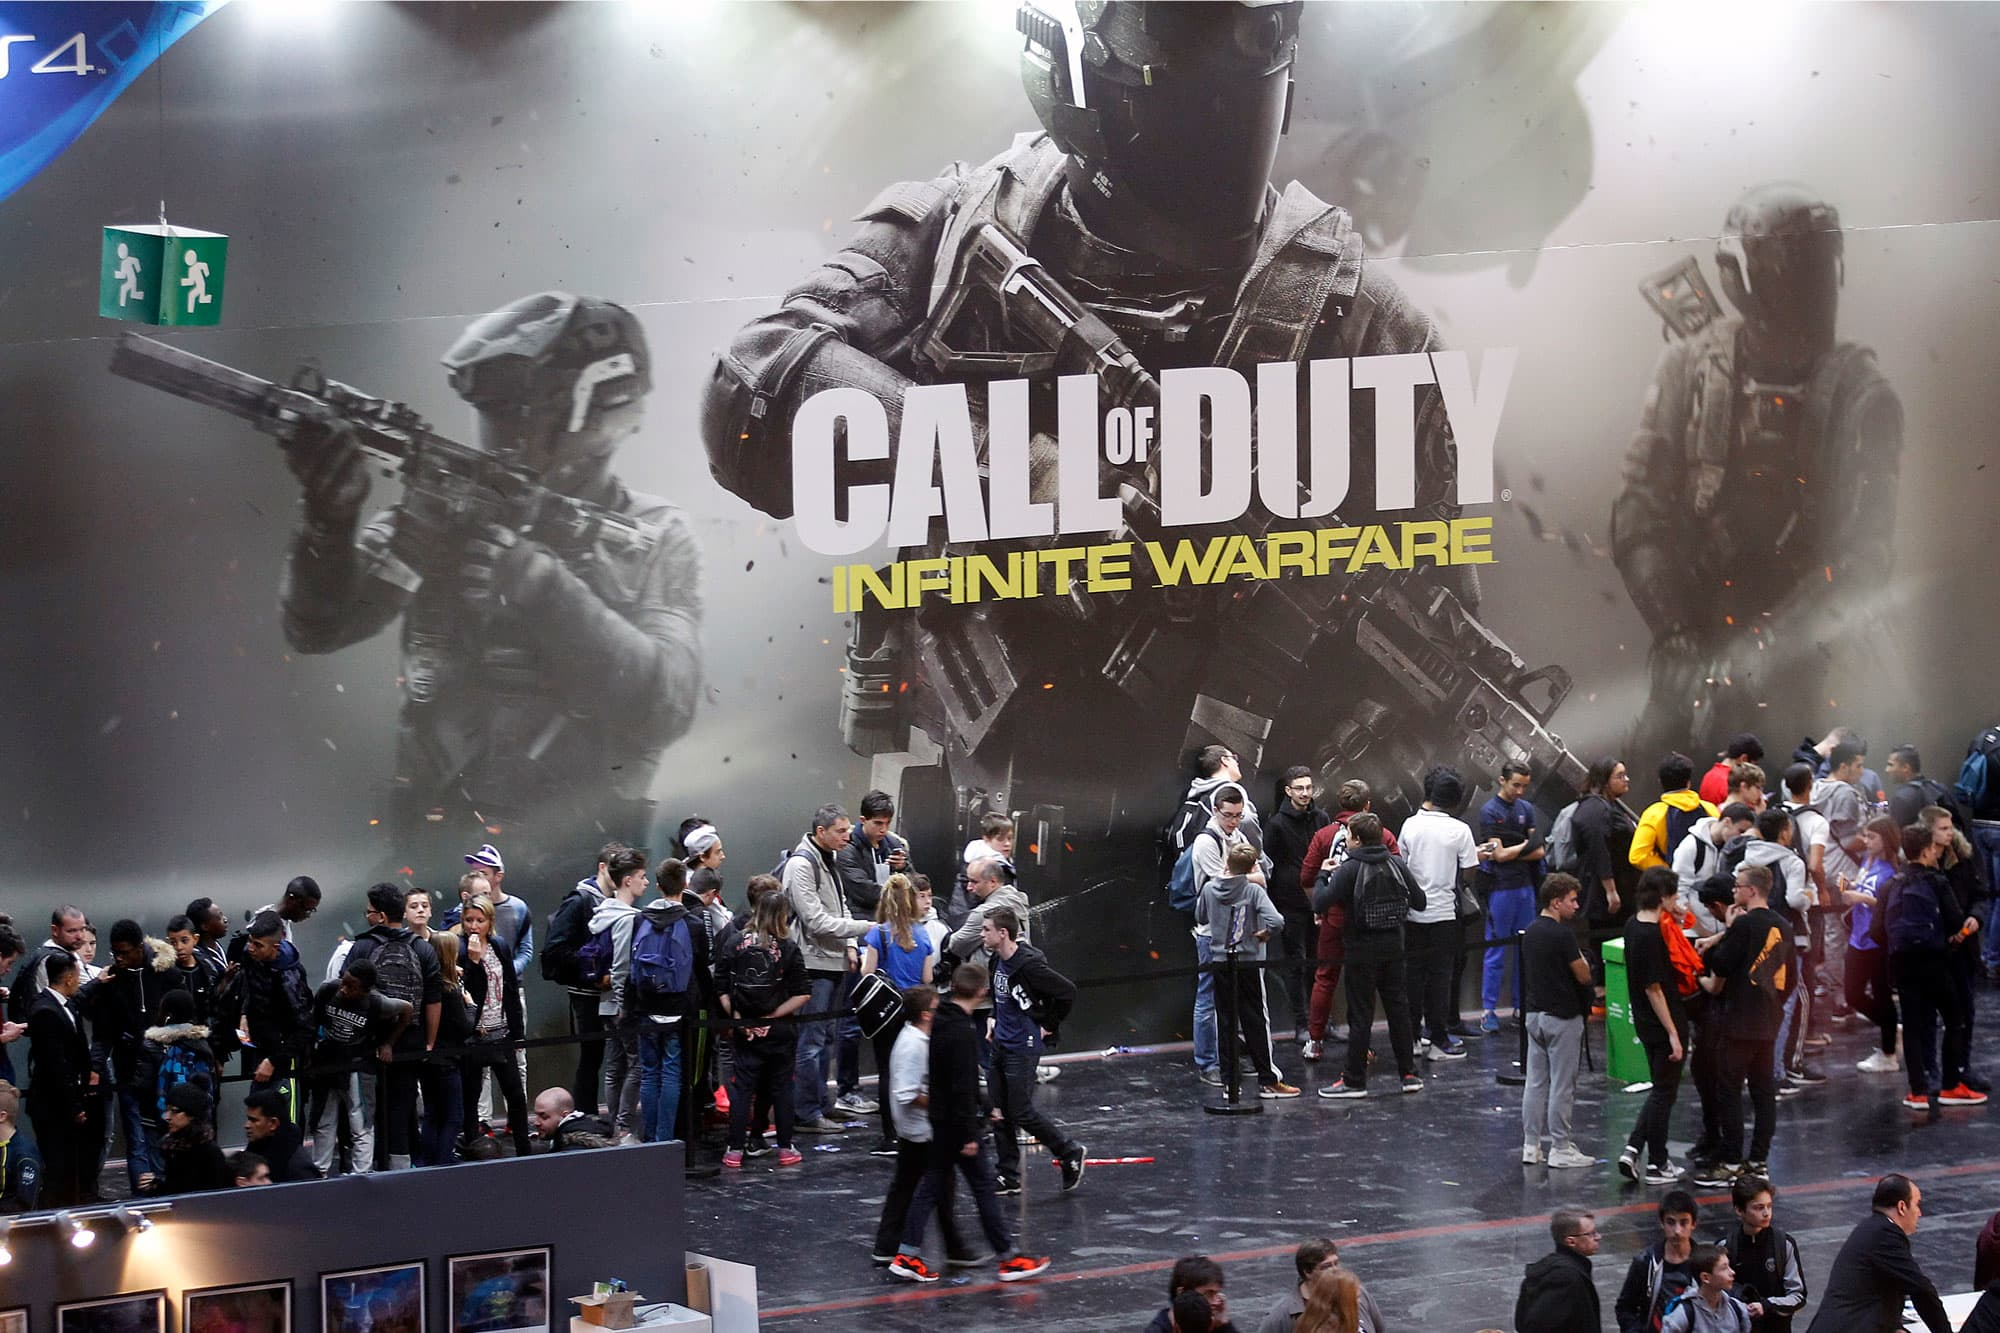 Call Of Duty Hit Game May Be Declining